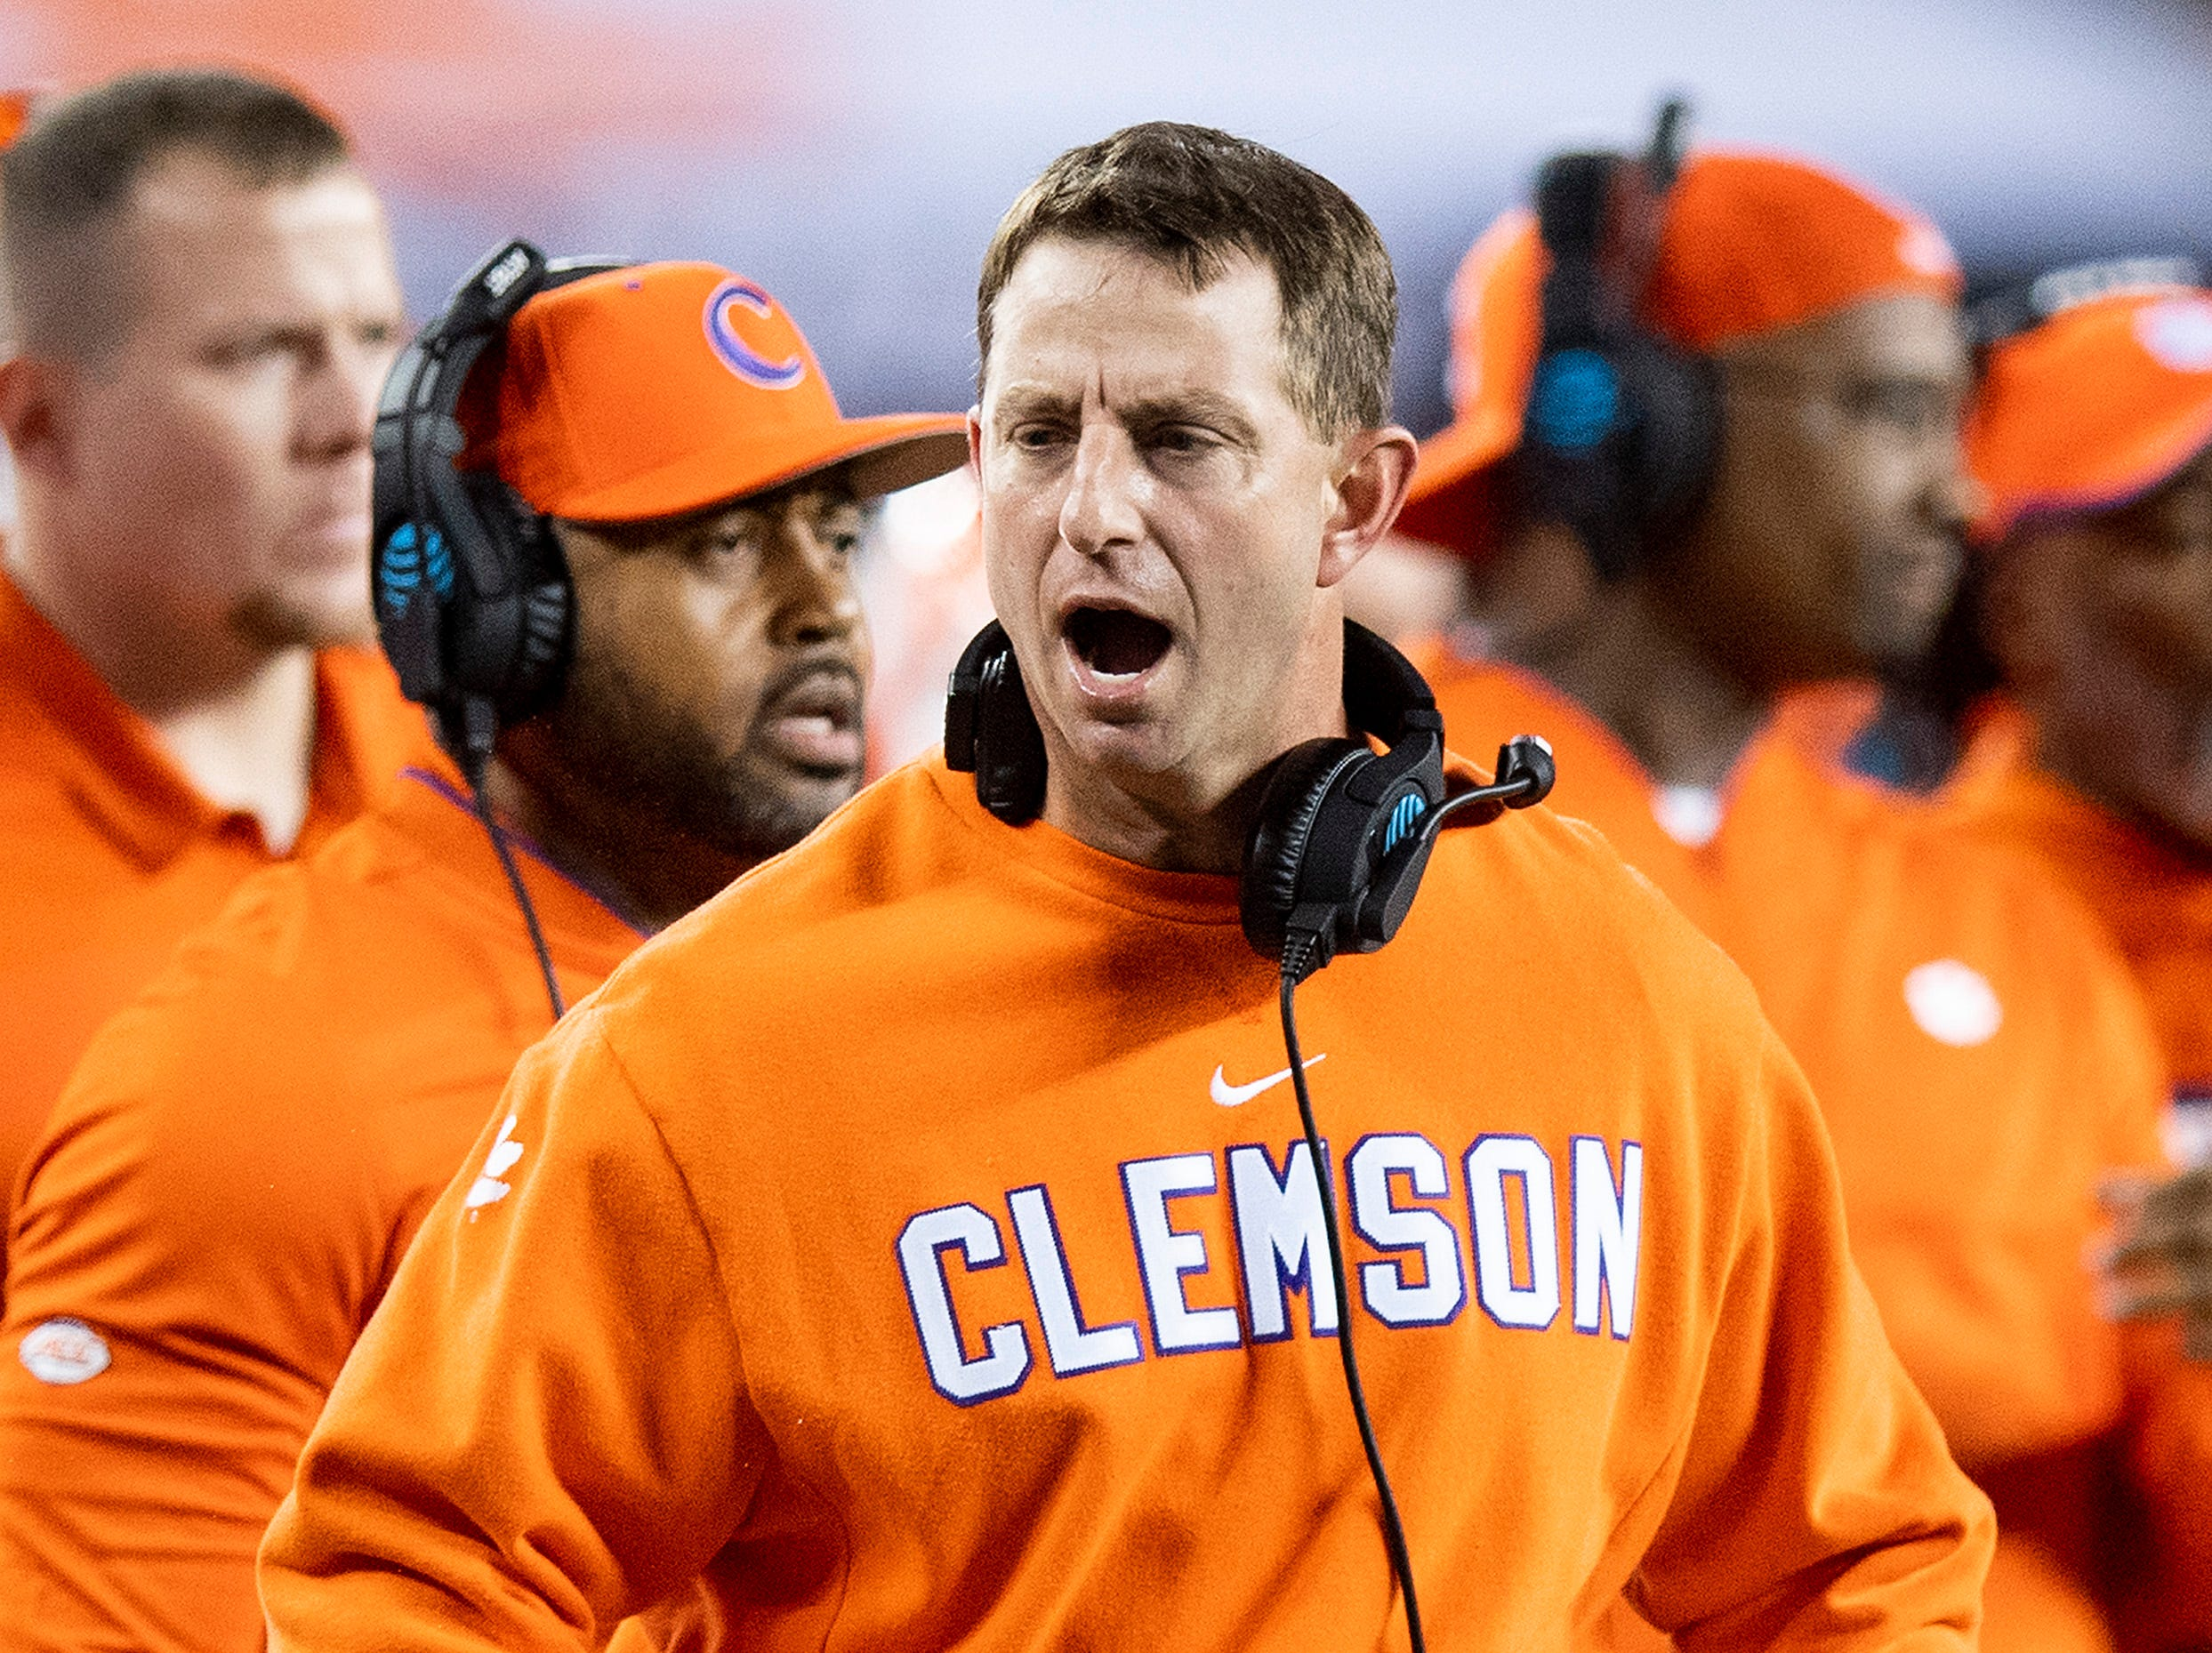 Clemson head coach Dabo Swinney In first half action of the College Football Playoff National Championship game at Levi's Stadium in Santa Clara, Ca., on Monday January 7, 2019.